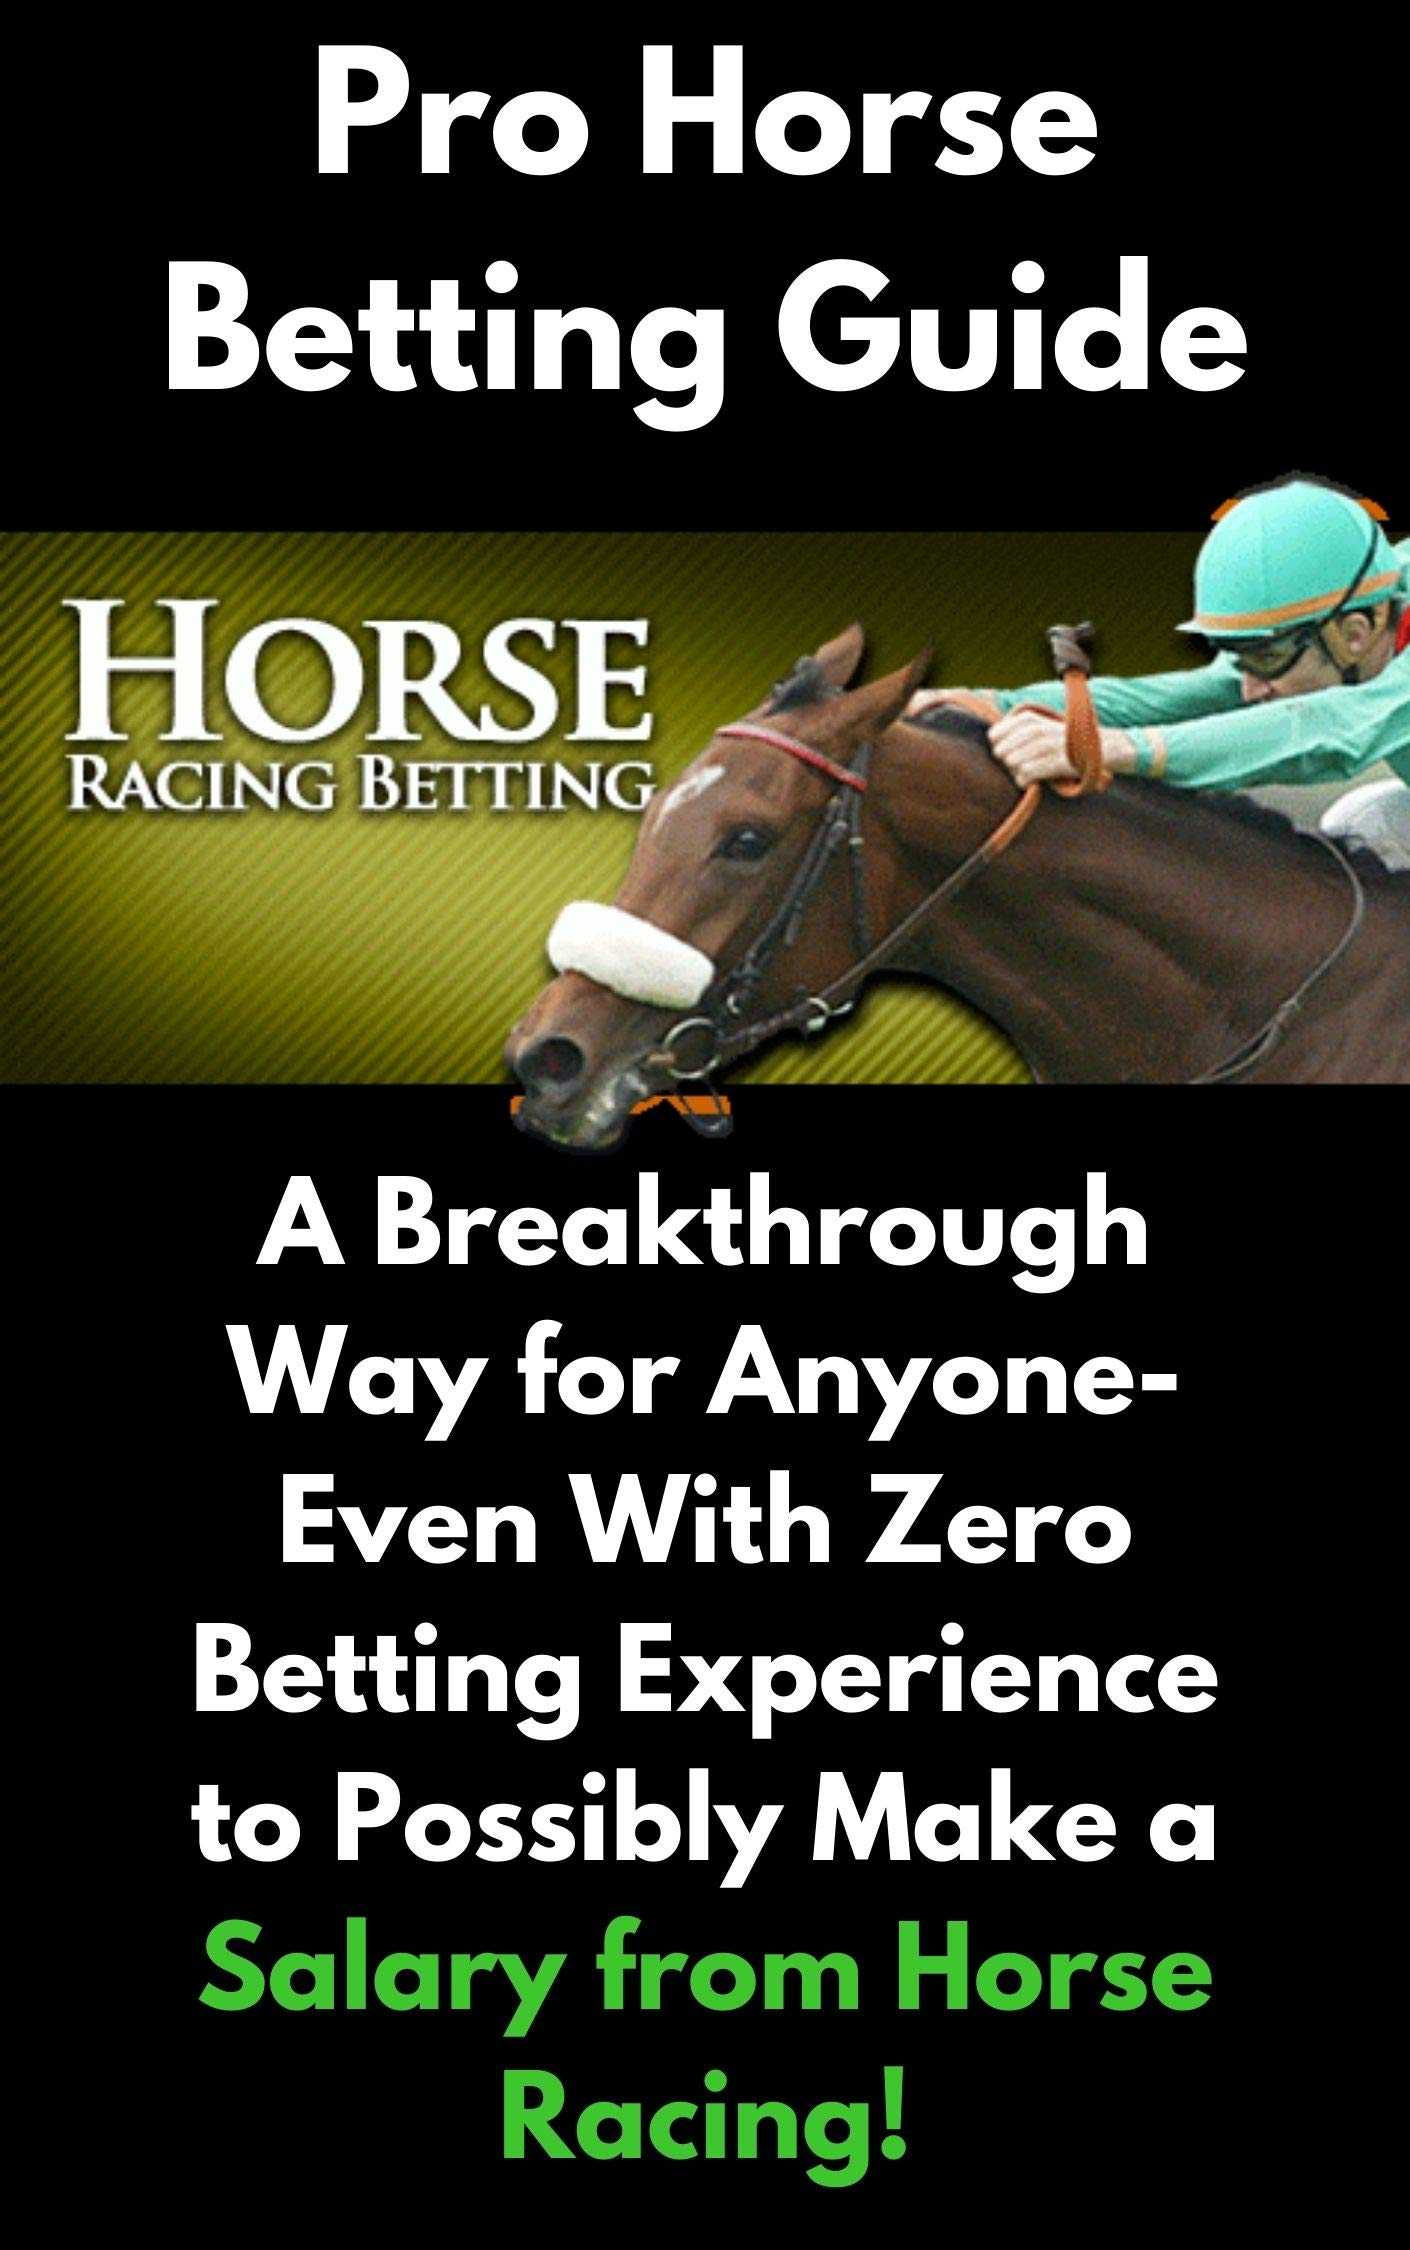 Pro Horse Betting Guide: Earn a Salary from Horse Betting